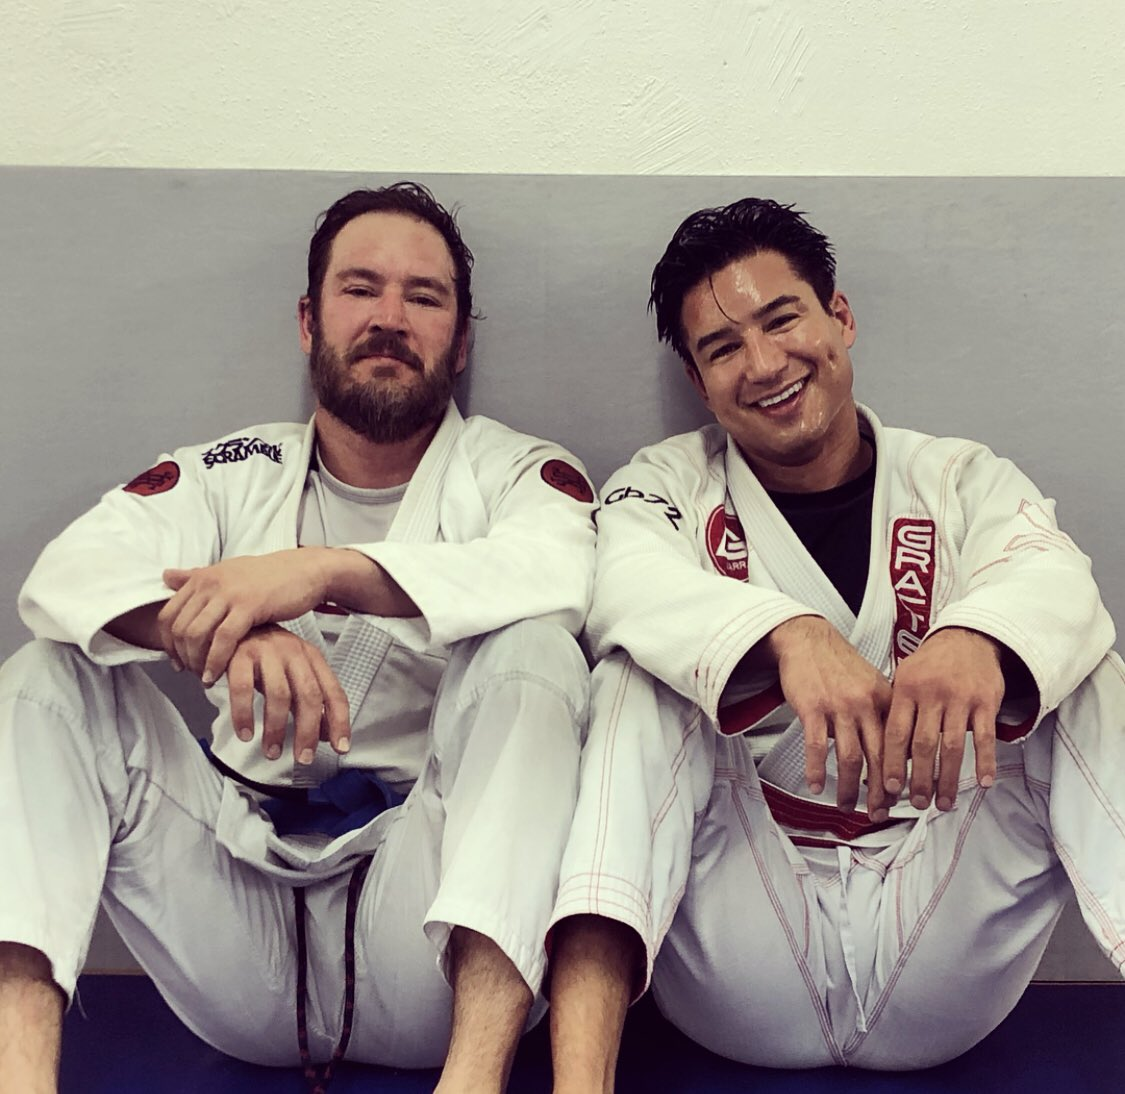 Great training with my boy @MPG! Beat each other up for an hour and a half...   #Jiujitsu  #BJJ  #OldSchoolHomies